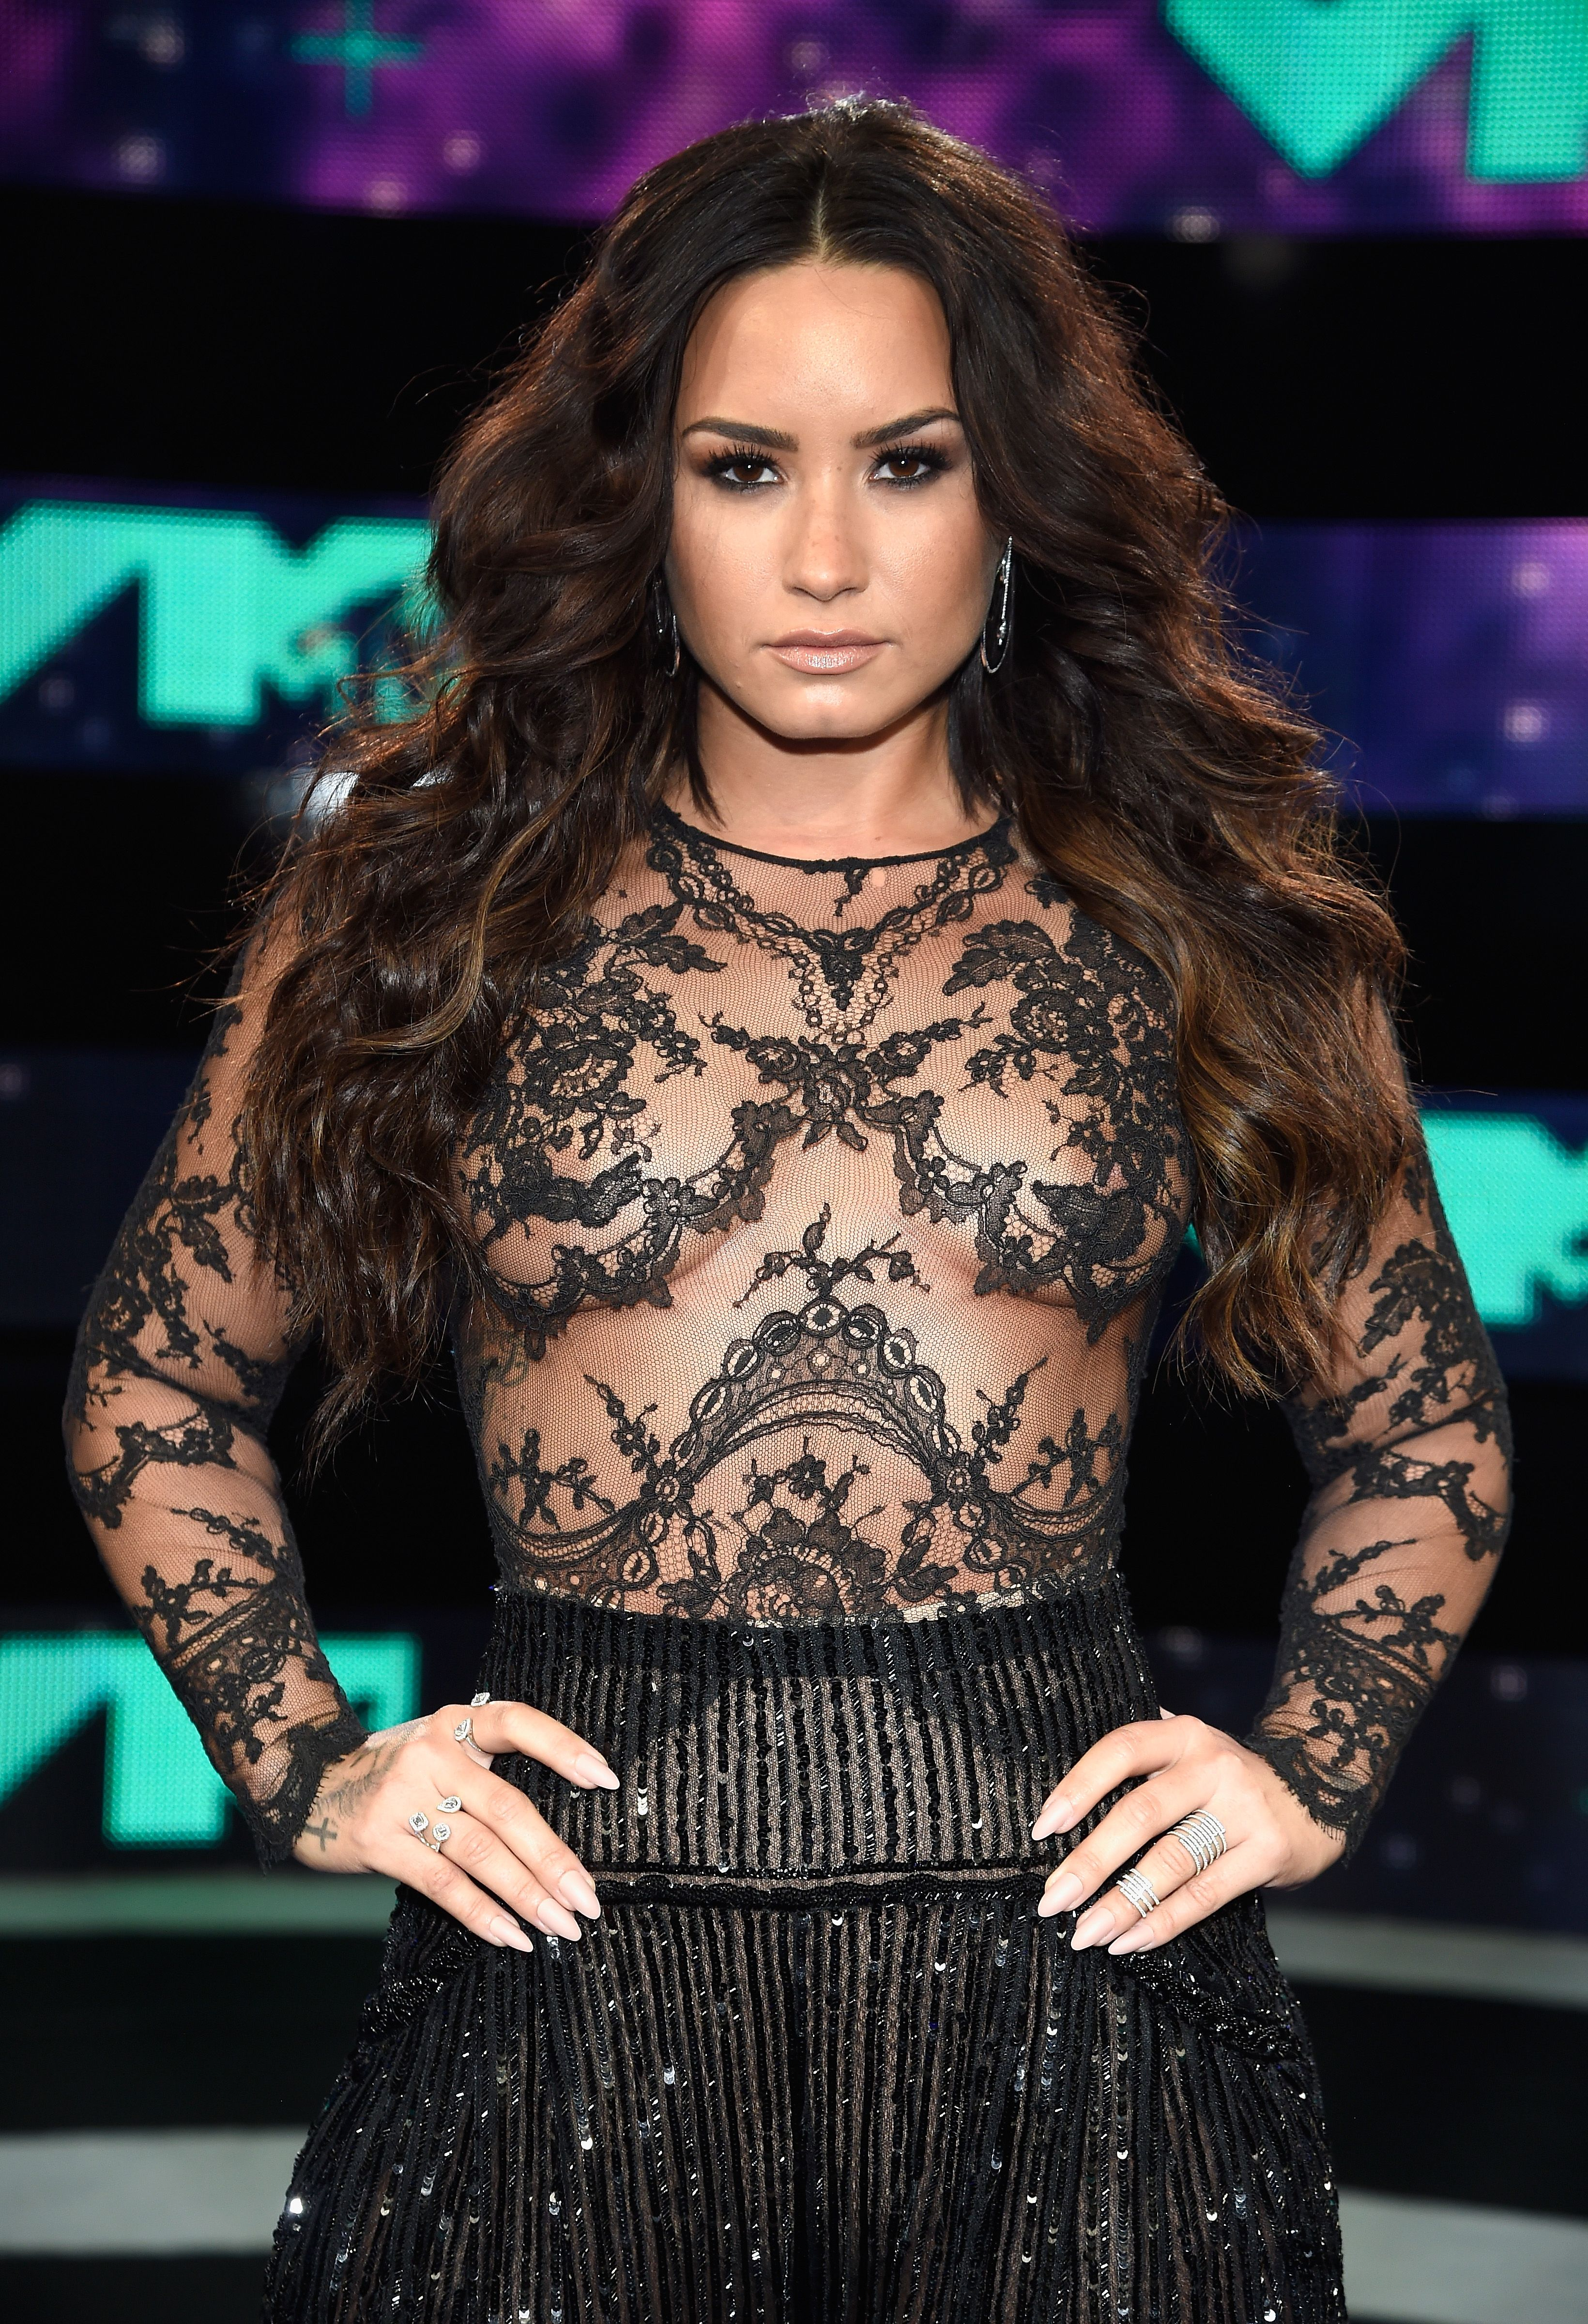 demi lovato in a see-through dress #viralsexypic | sexy but not porn